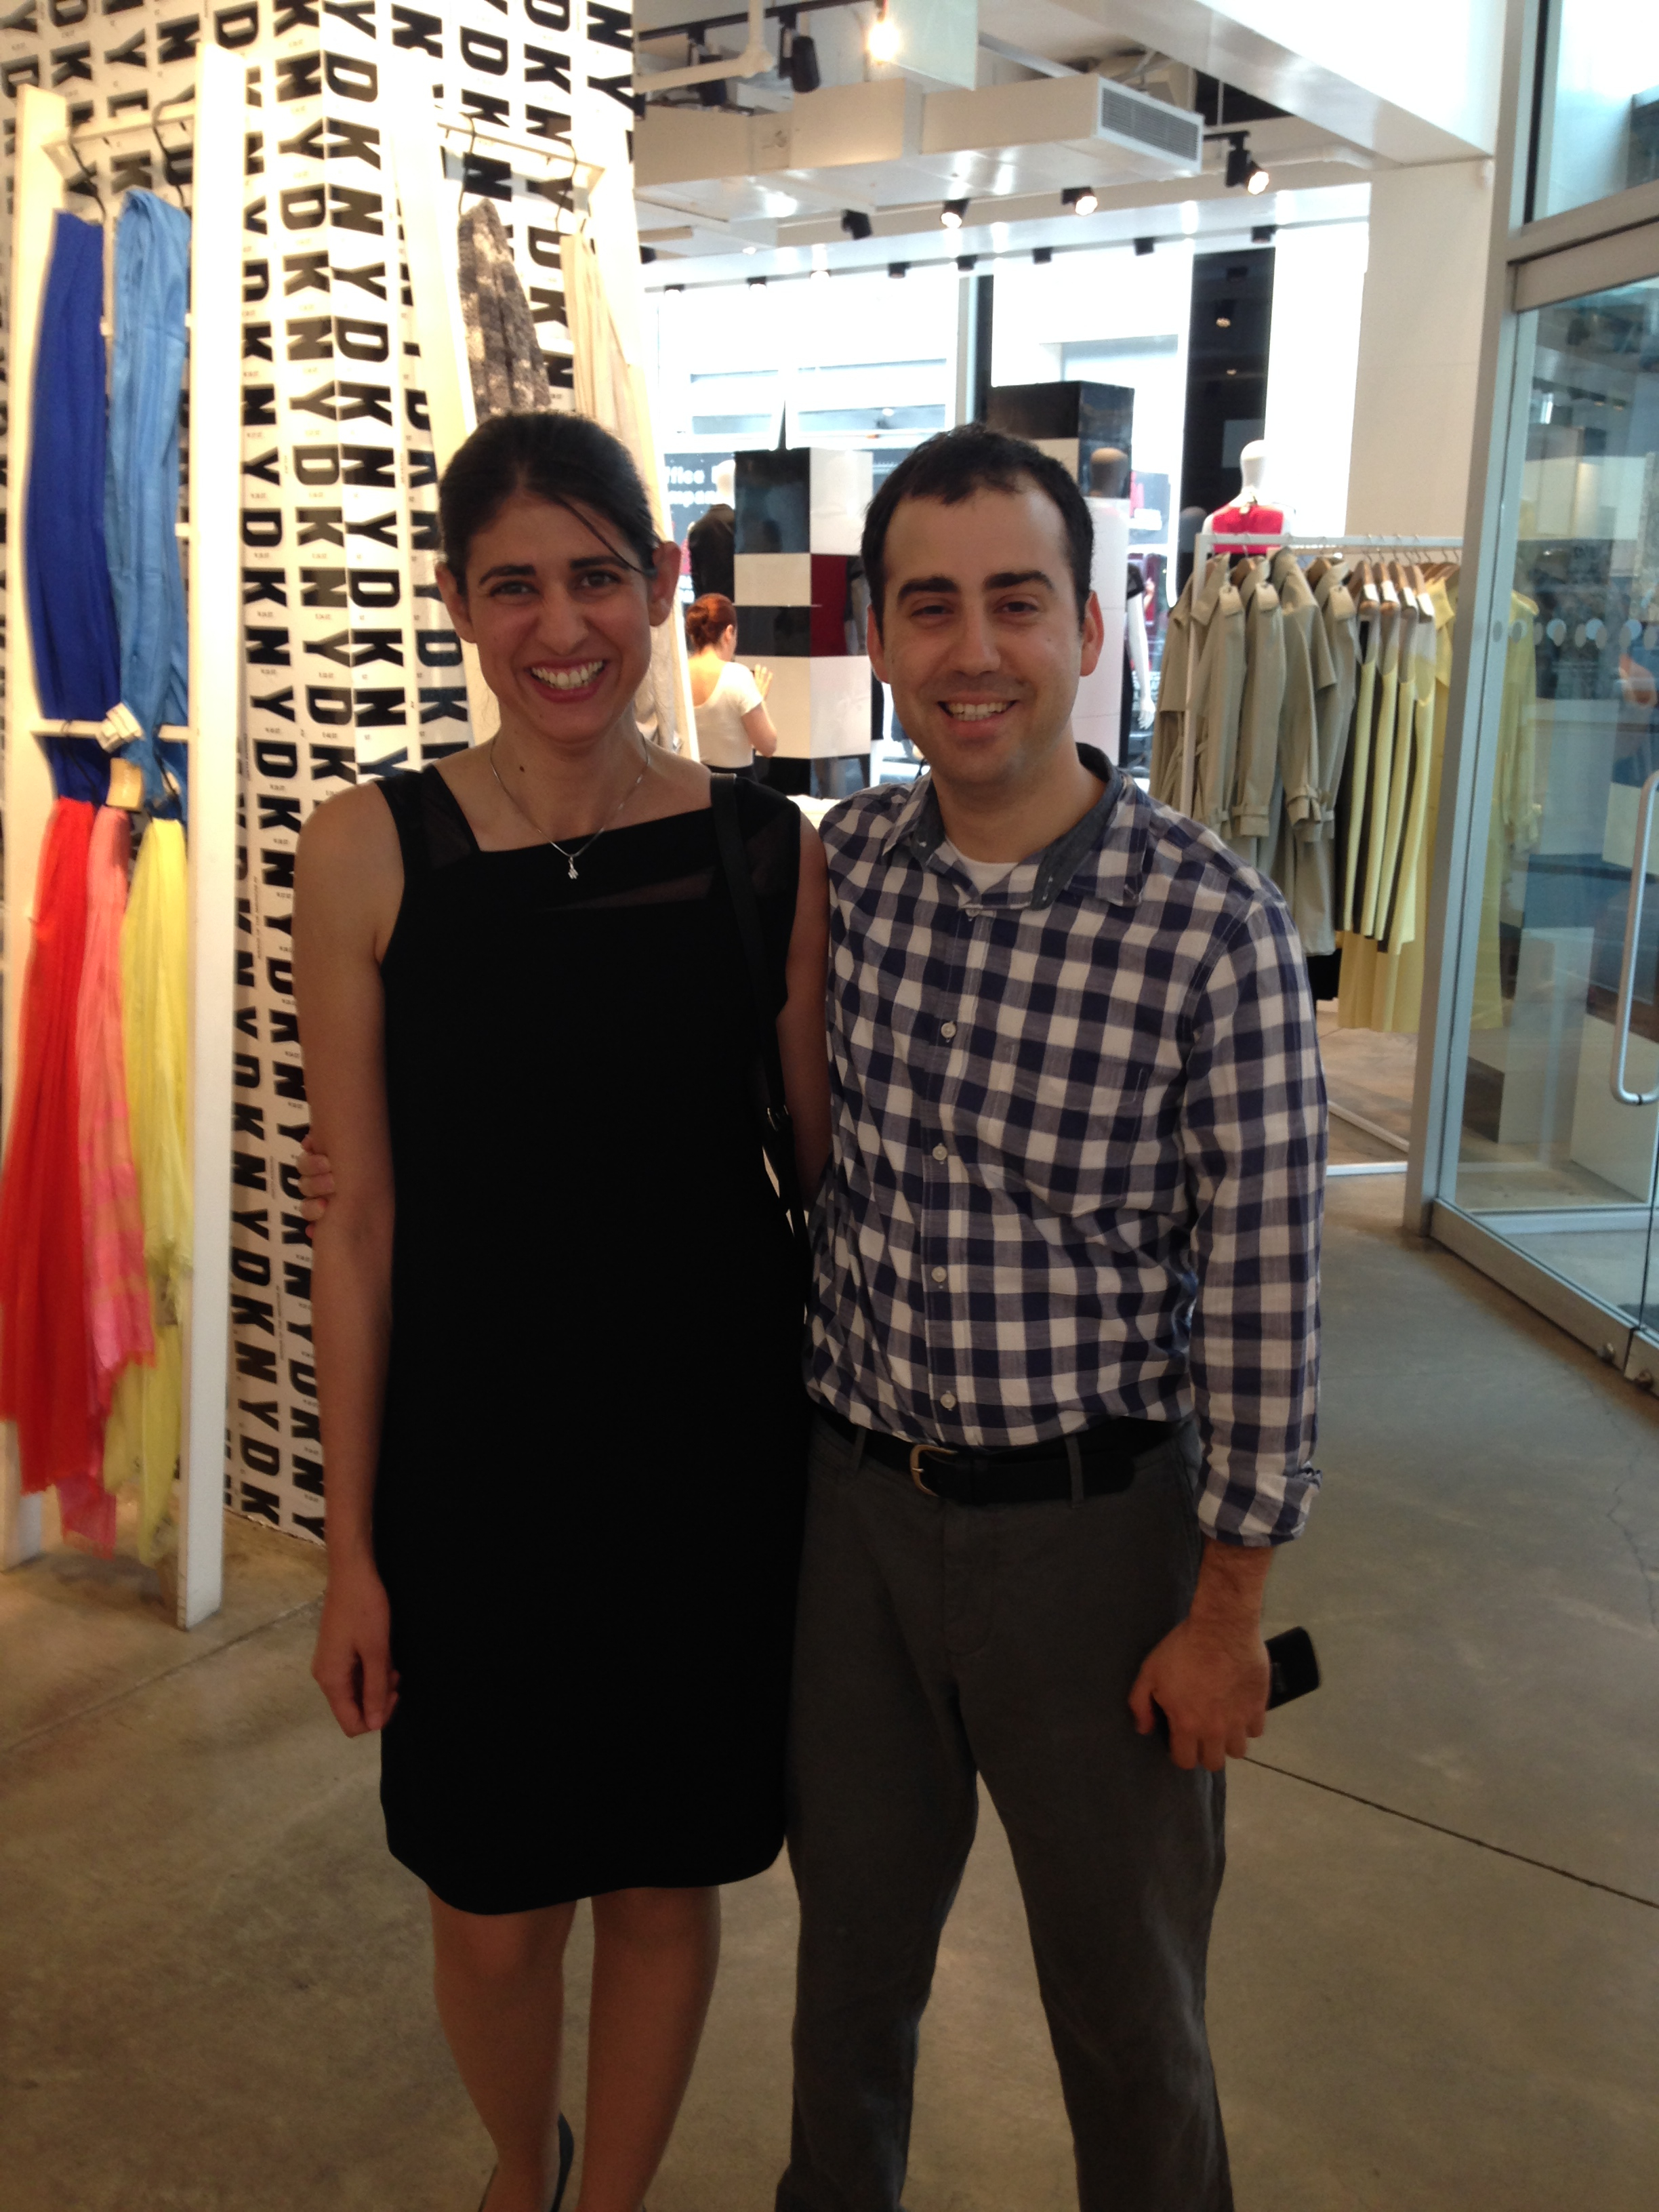 Awear's cofounders, CEO Liron Slinomsky and CTO Orin. (Photo via Ms. Slinomsky)